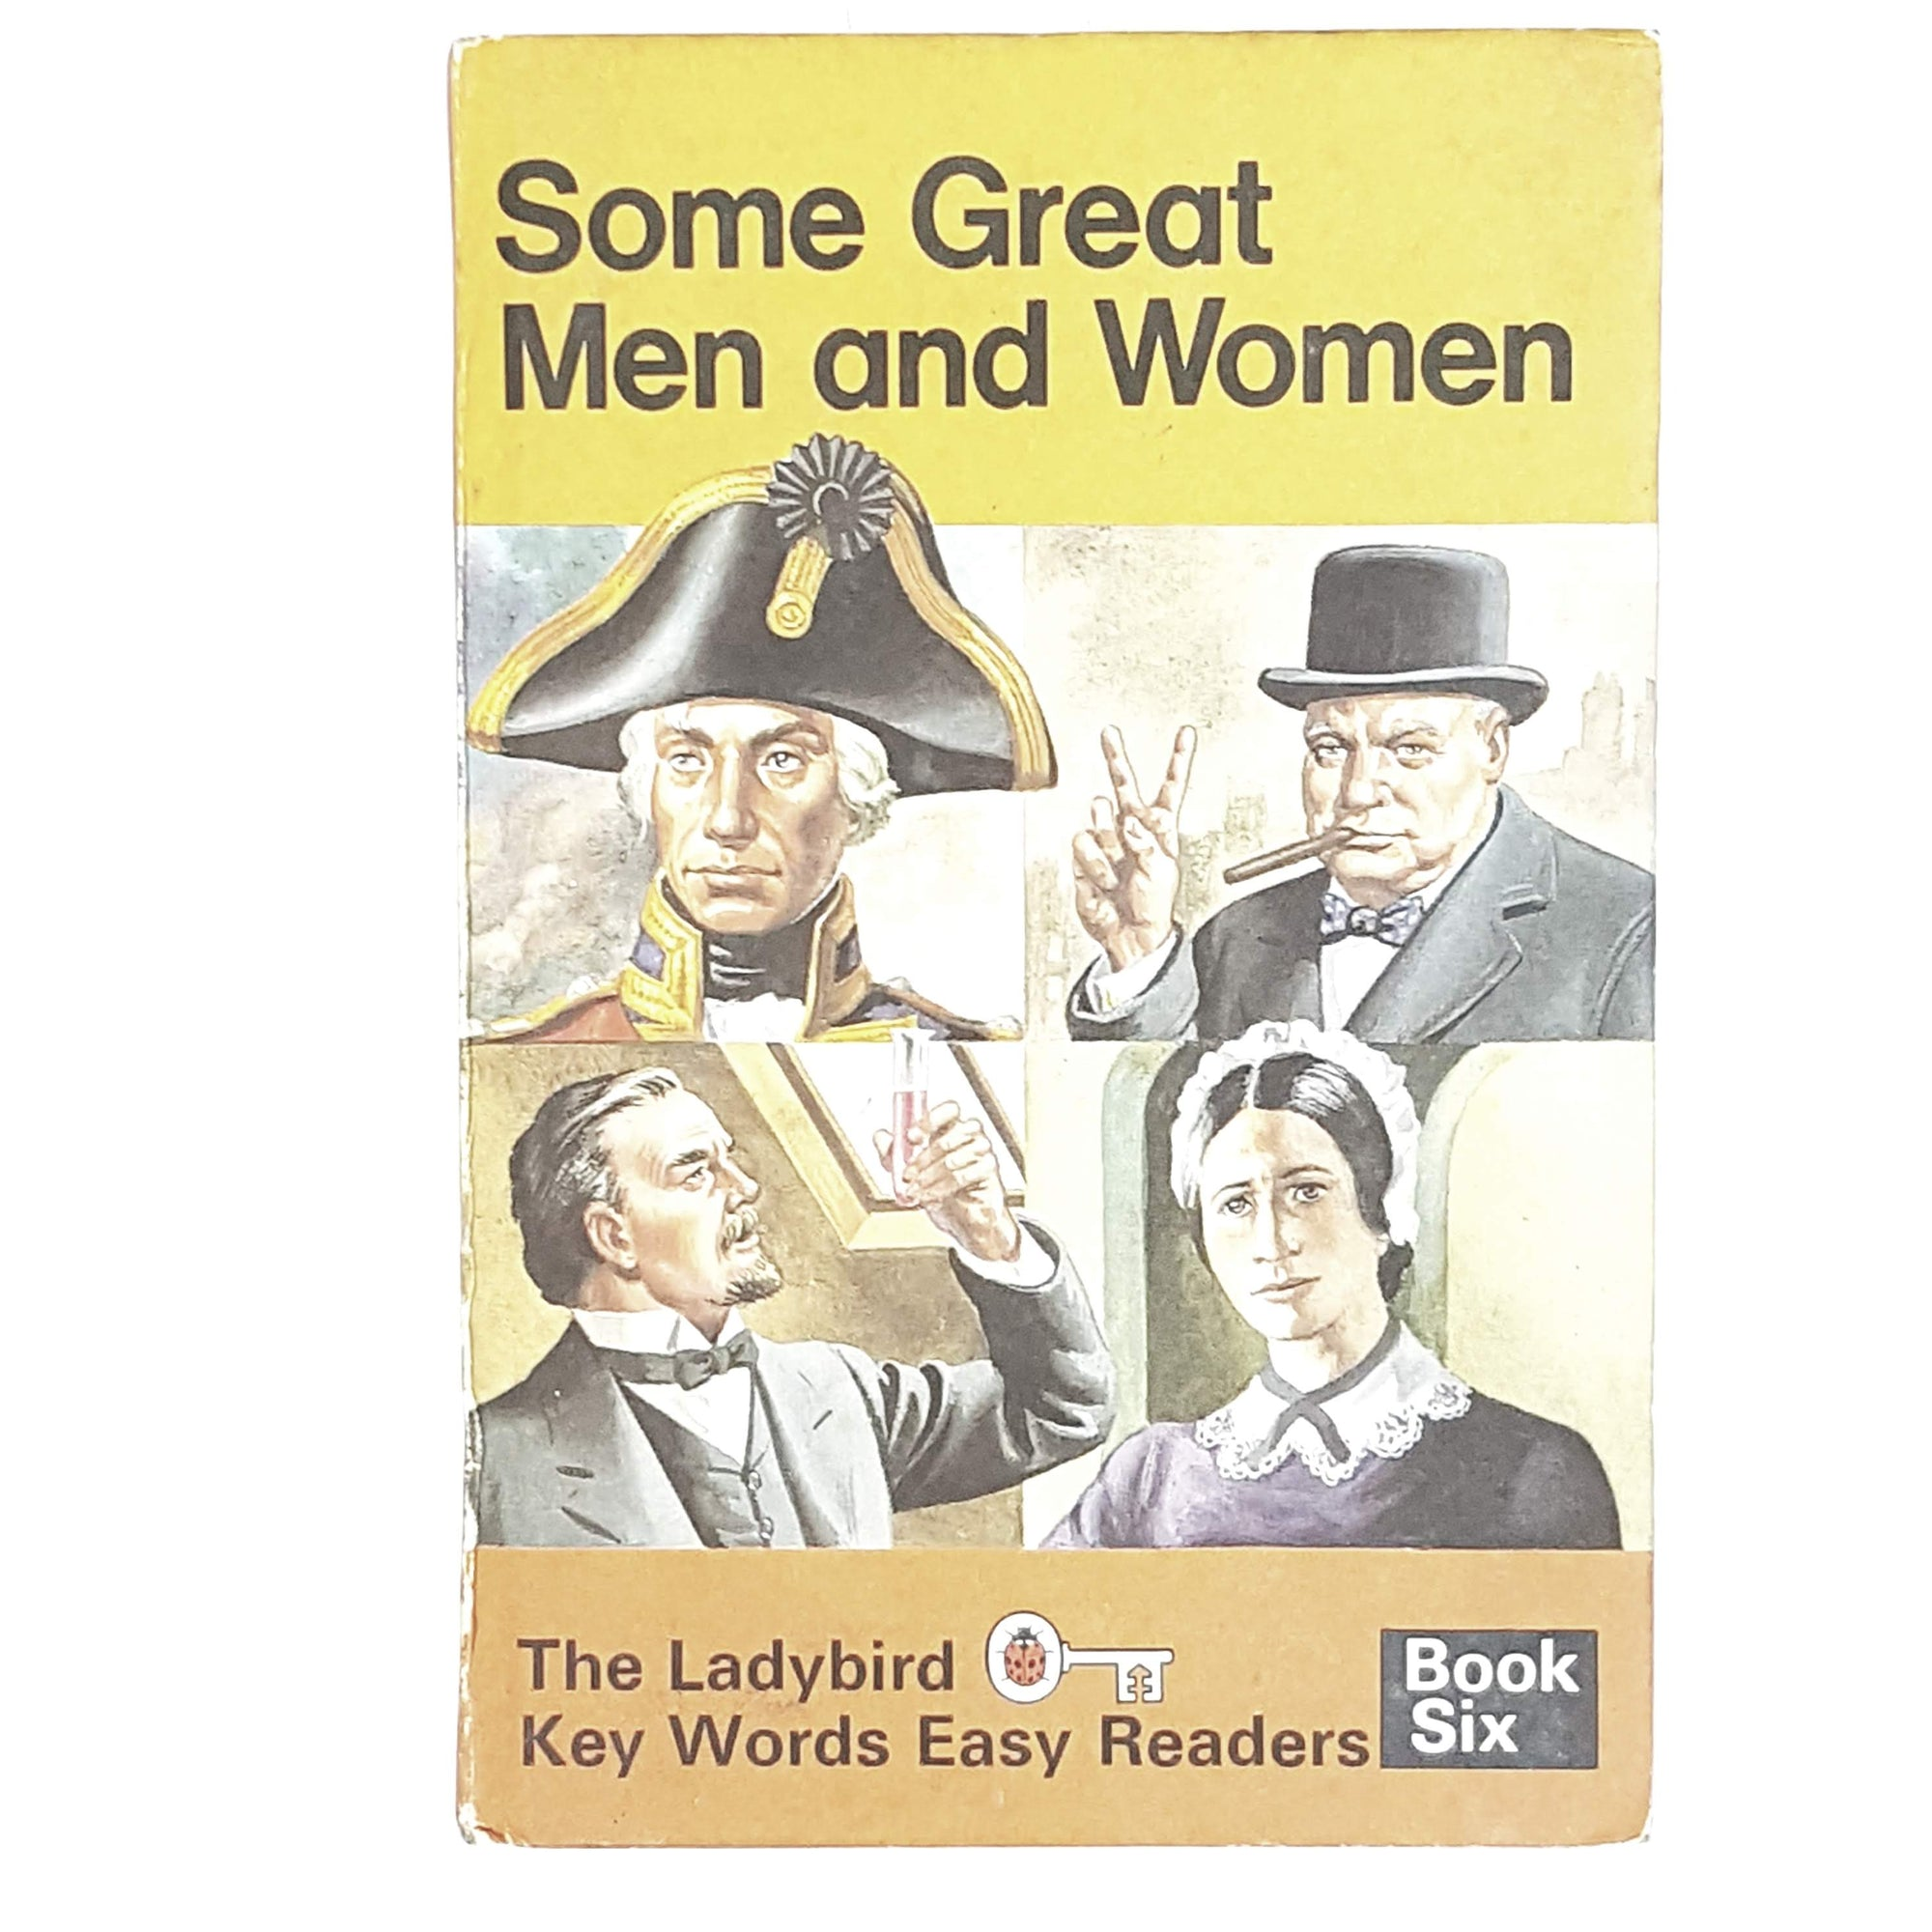 Some Great Men and Women by W. Murray 1972